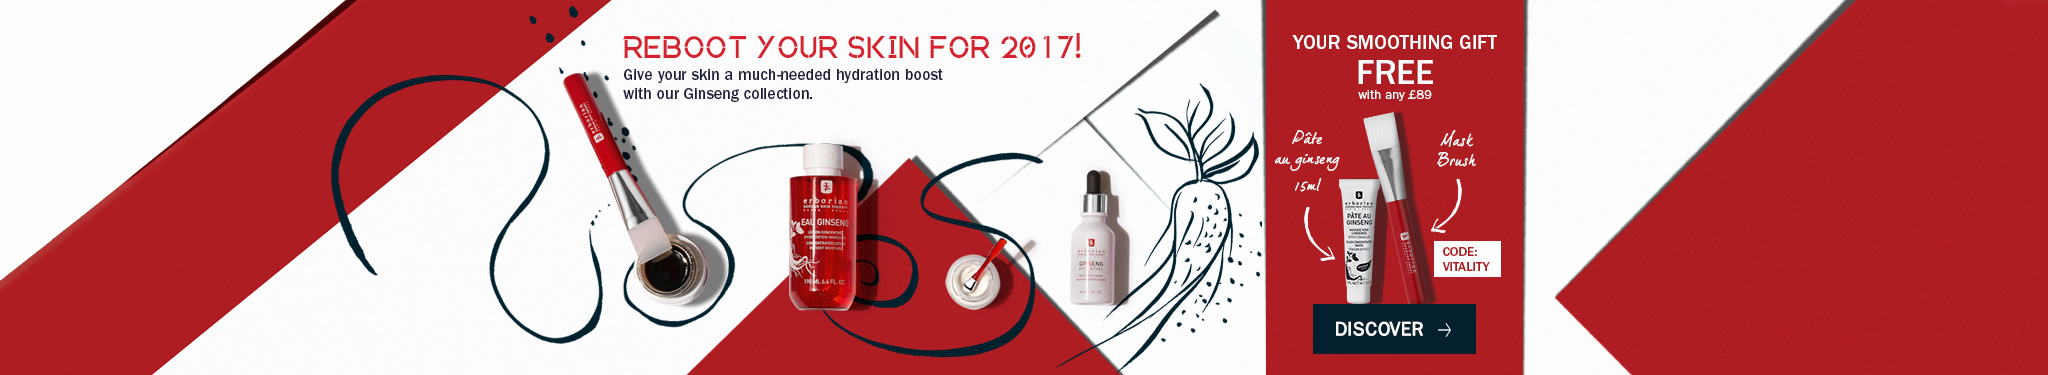 Reboot your skin: give to your skin a much-needed hydration boost with our ginseng collection